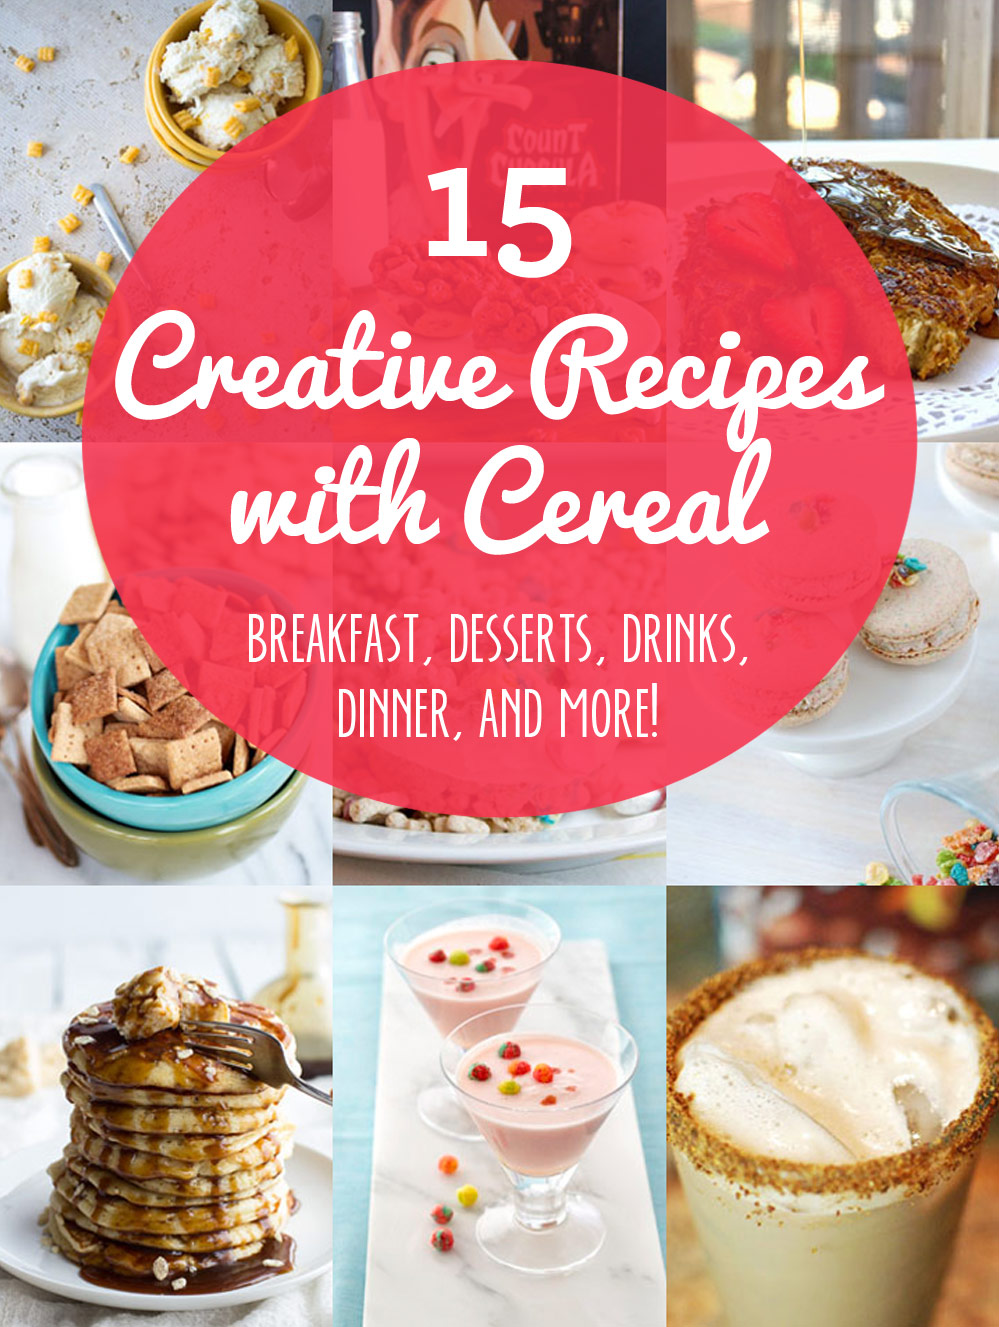 15 Creative and Crazy Recipes Using Cereal